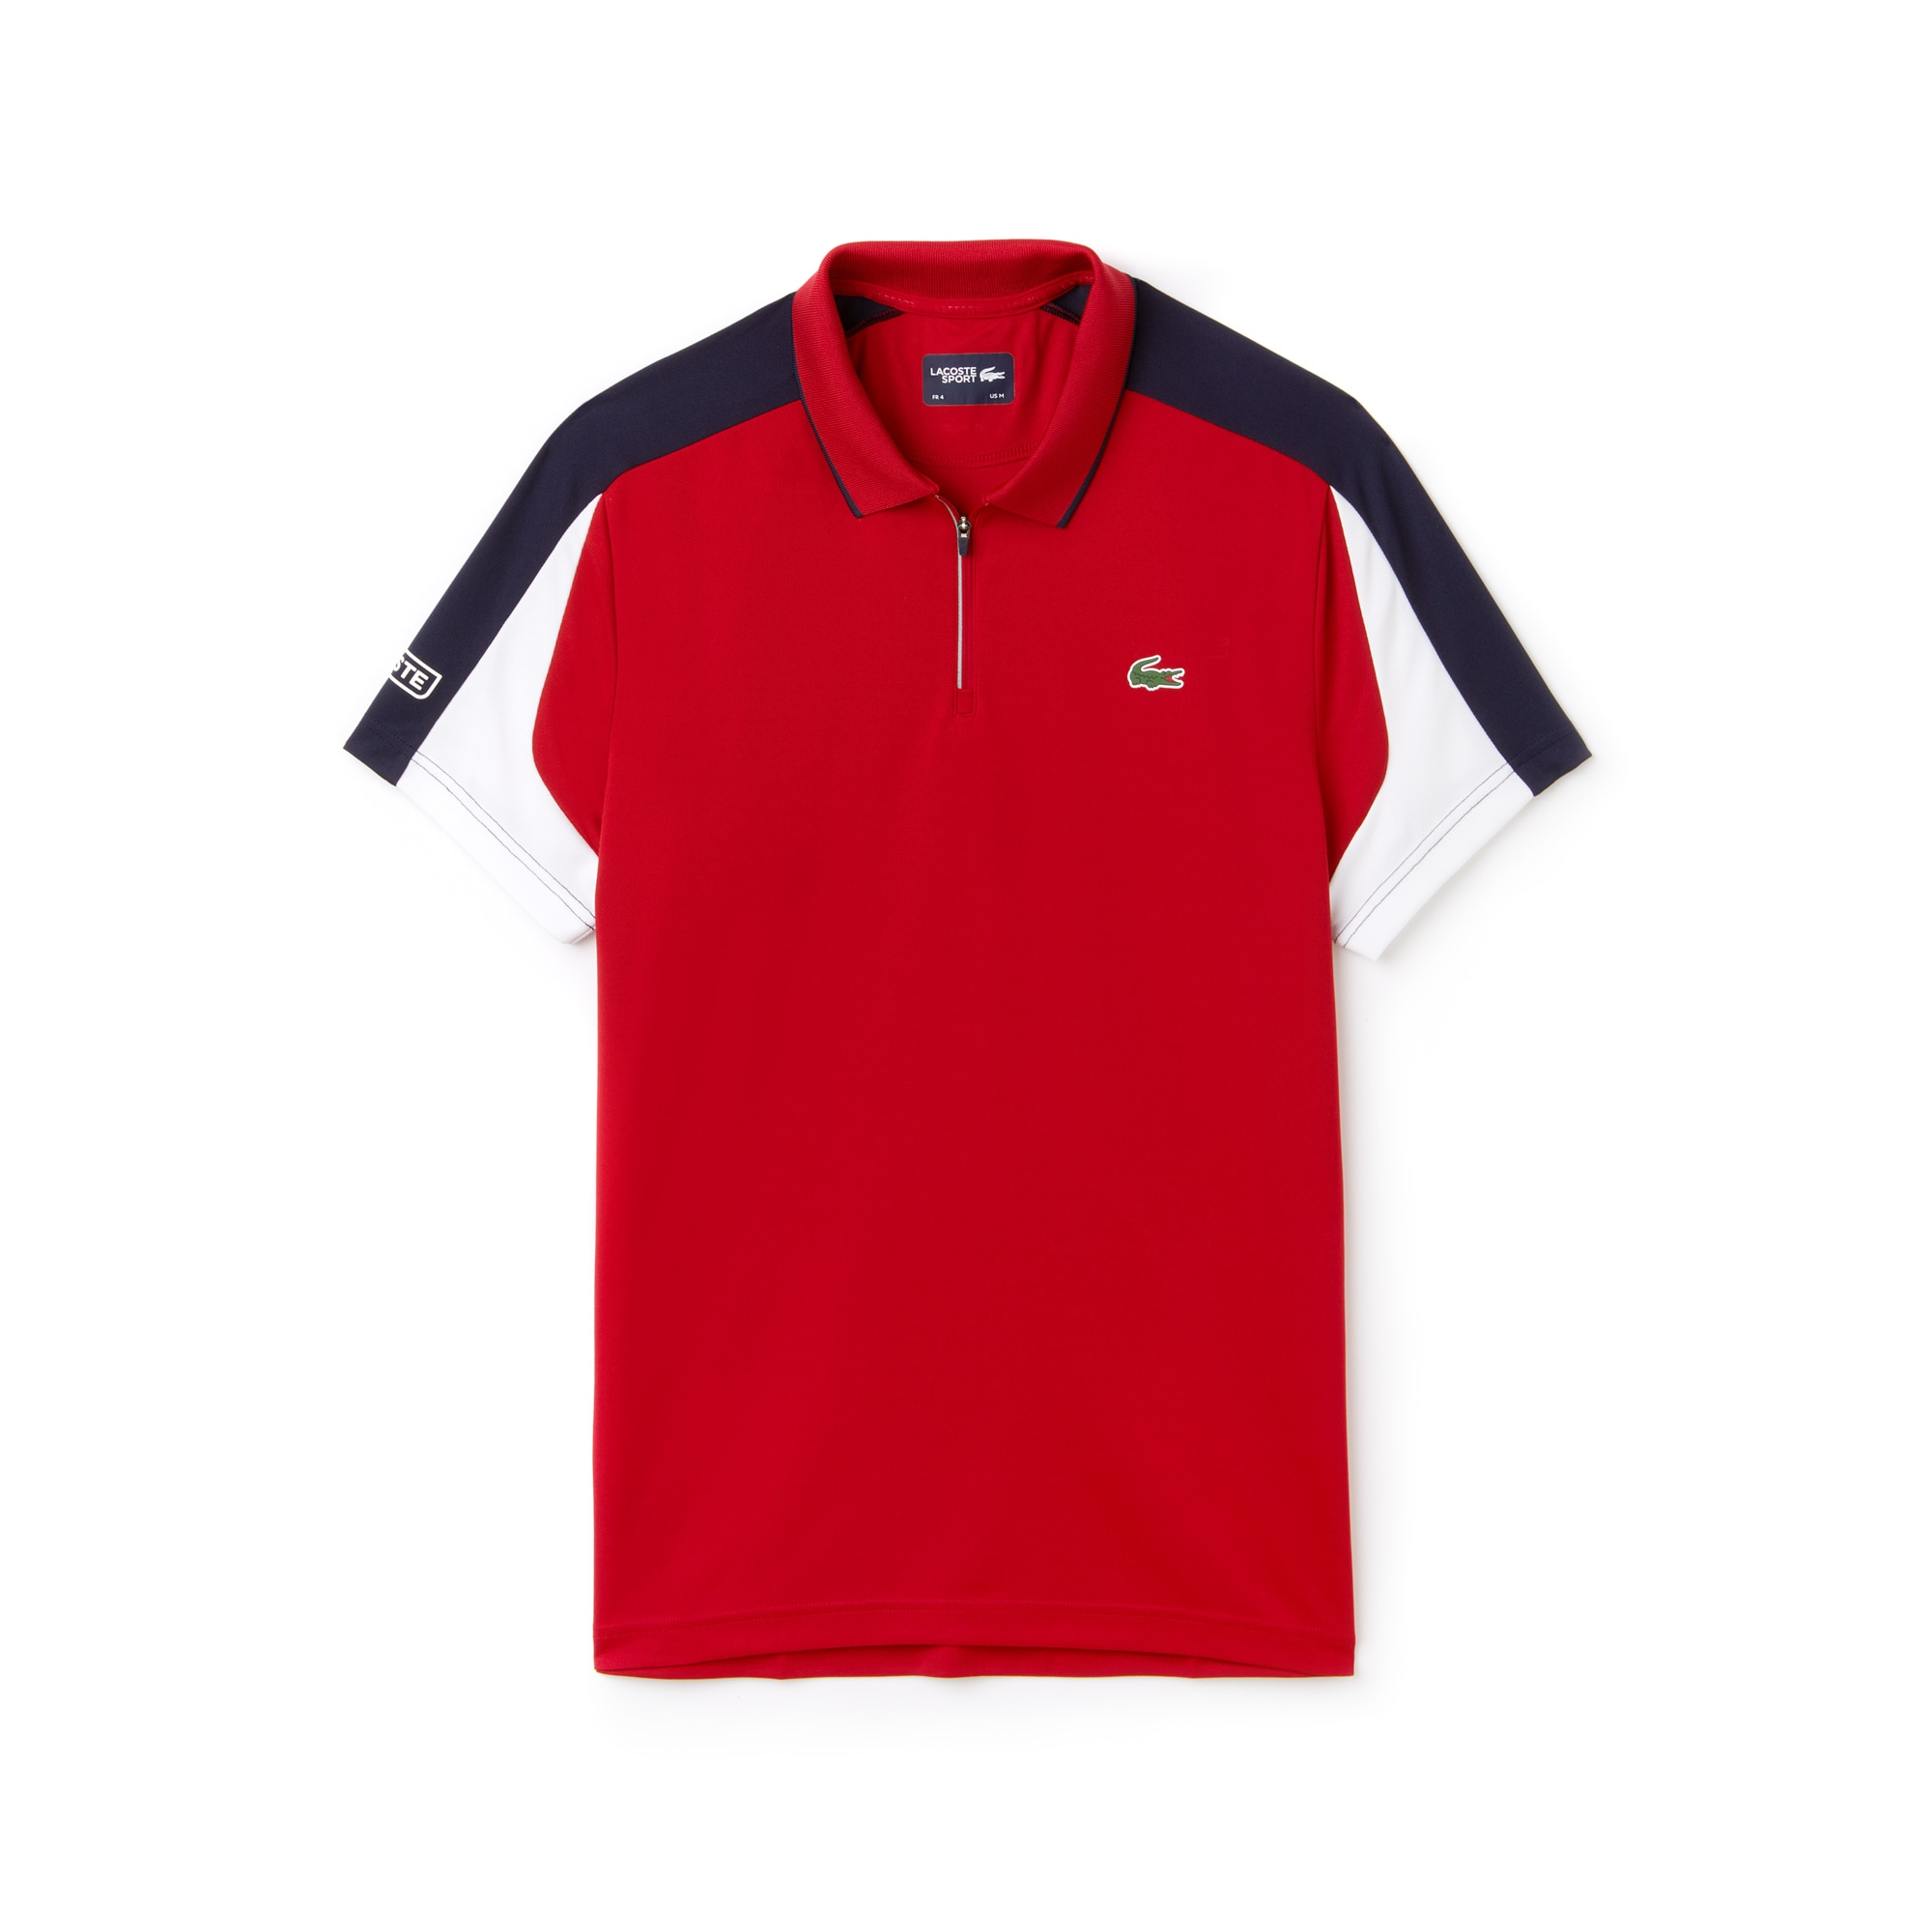 라코스테 Lacoste Mens SPORT Zip Neck Contrast Bands Pique Tennis Polo,lighthouse red/navy blue-